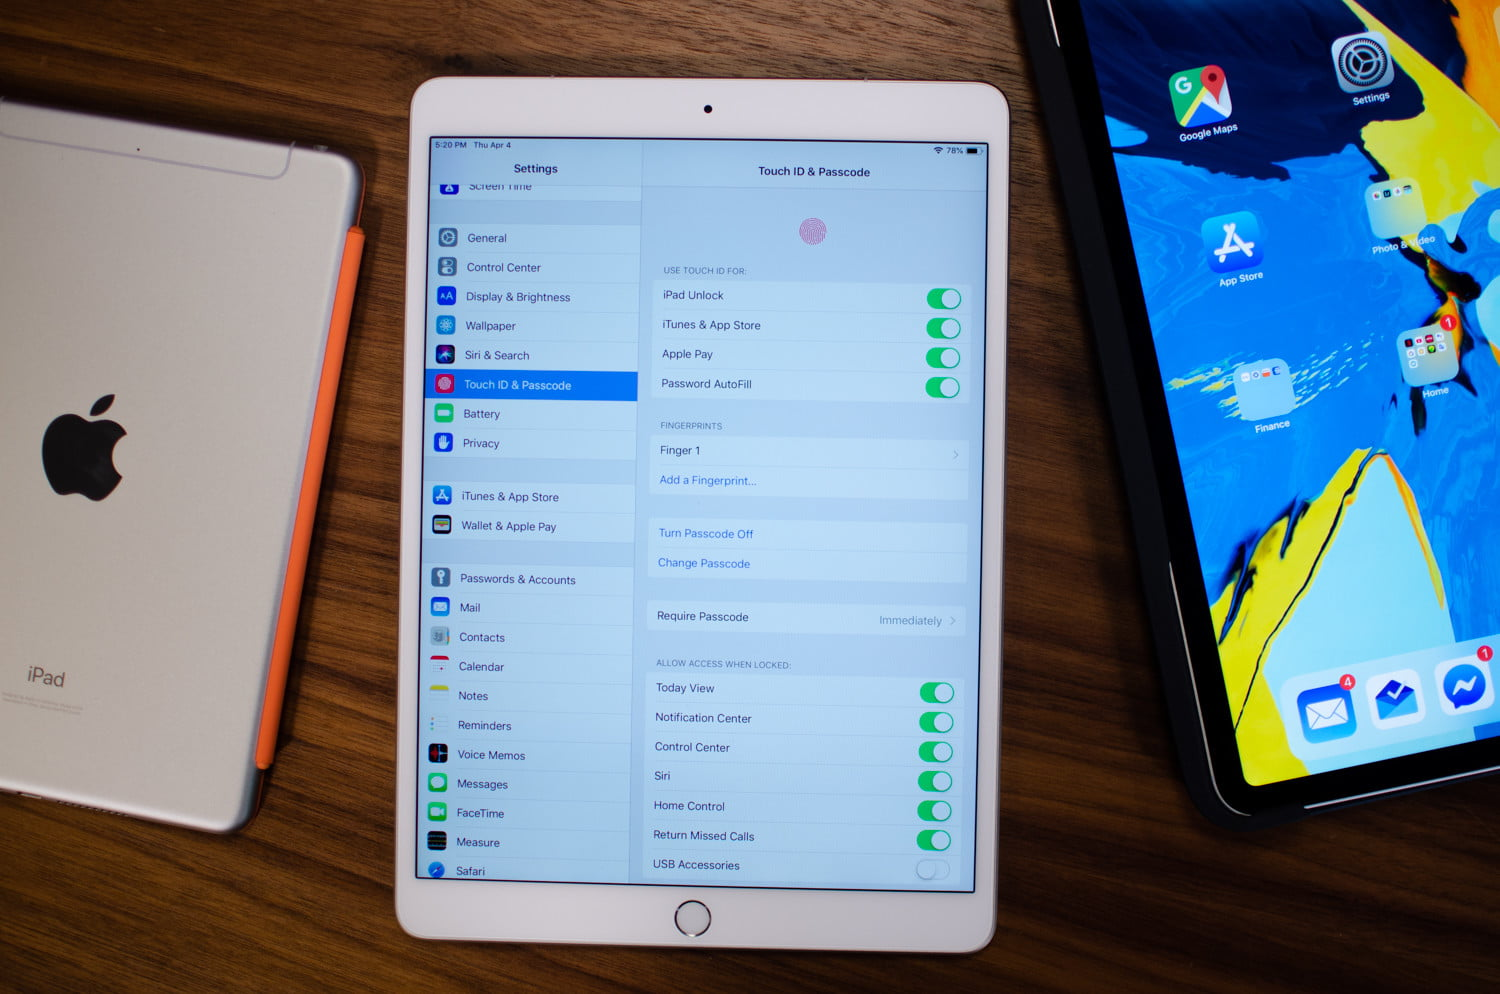 New iPad? Pro or Not, Here Are 10 Settings to Change on Your